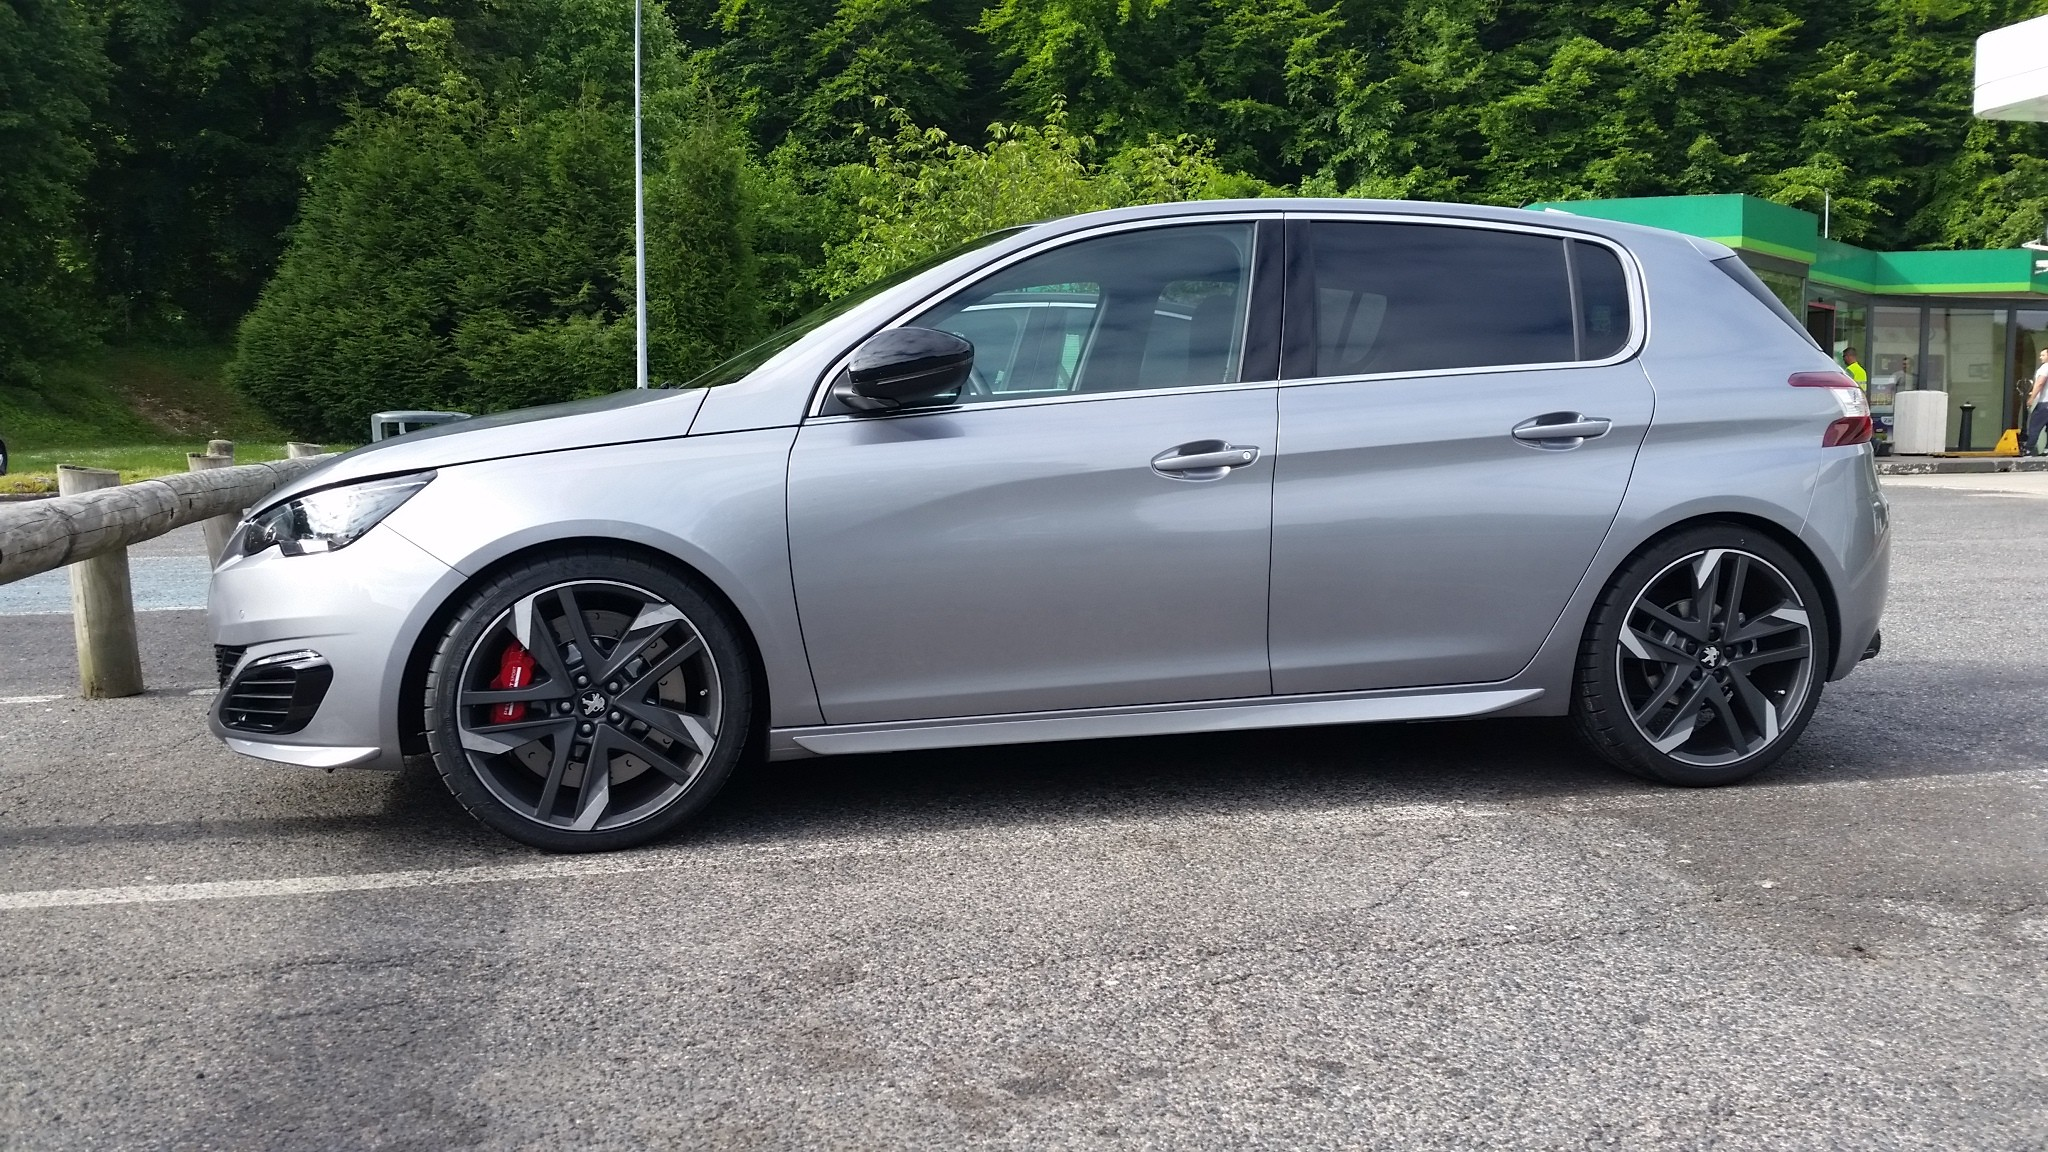 scoop: peugeot 308 gti will have 250 and 270 hp, weighs just 1,205